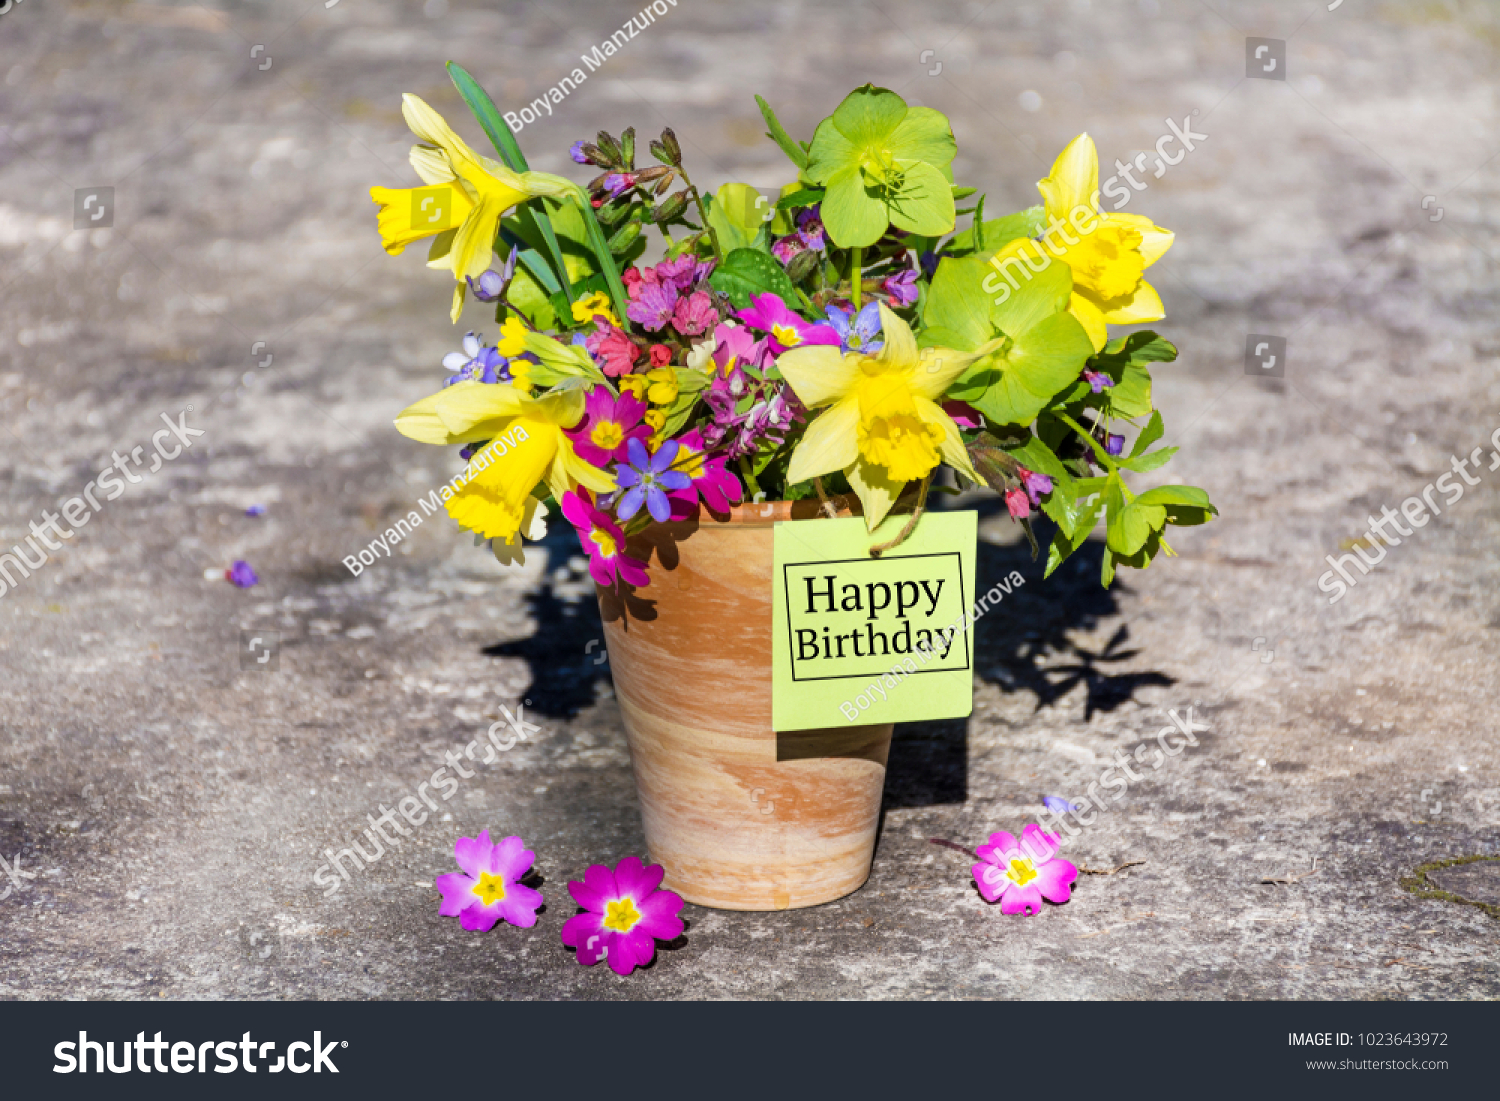 Happy birthday greeting card spring flowers stock photo edit now happy birthday greeting card with spring flowers bouquet and tag izmirmasajfo